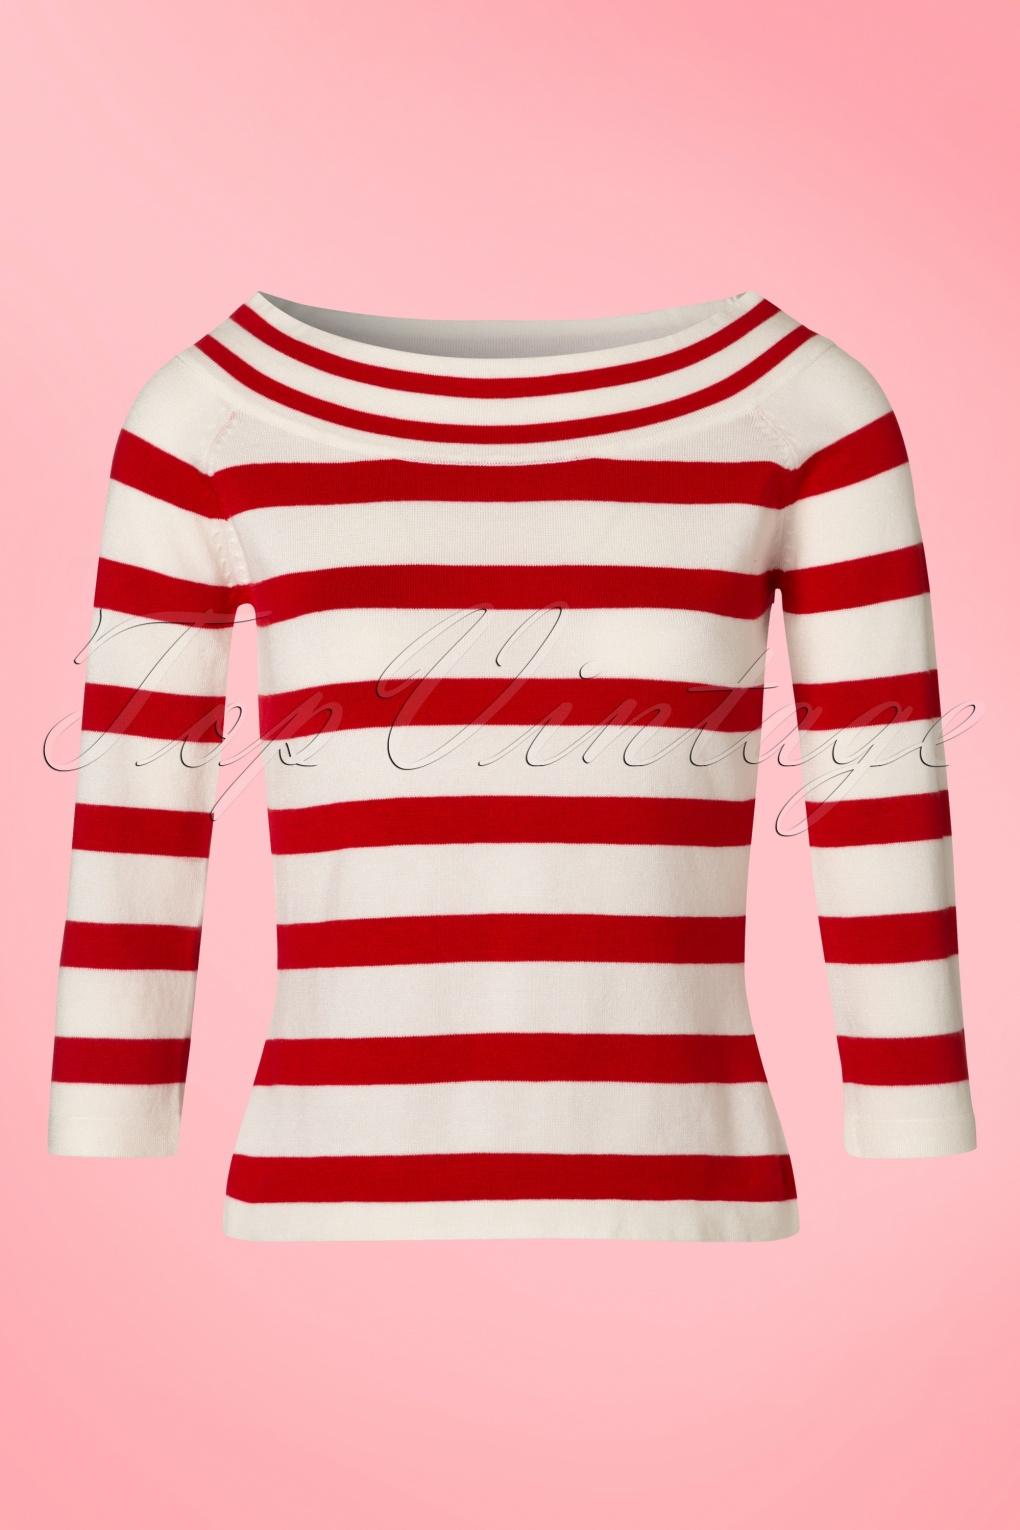 Vintage Sweaters: Cable Knit, Fair Isle Cardigans & Sweaters 50s Ahoi Stripes Top in Red and White £35.00 AT vintagedancer.com